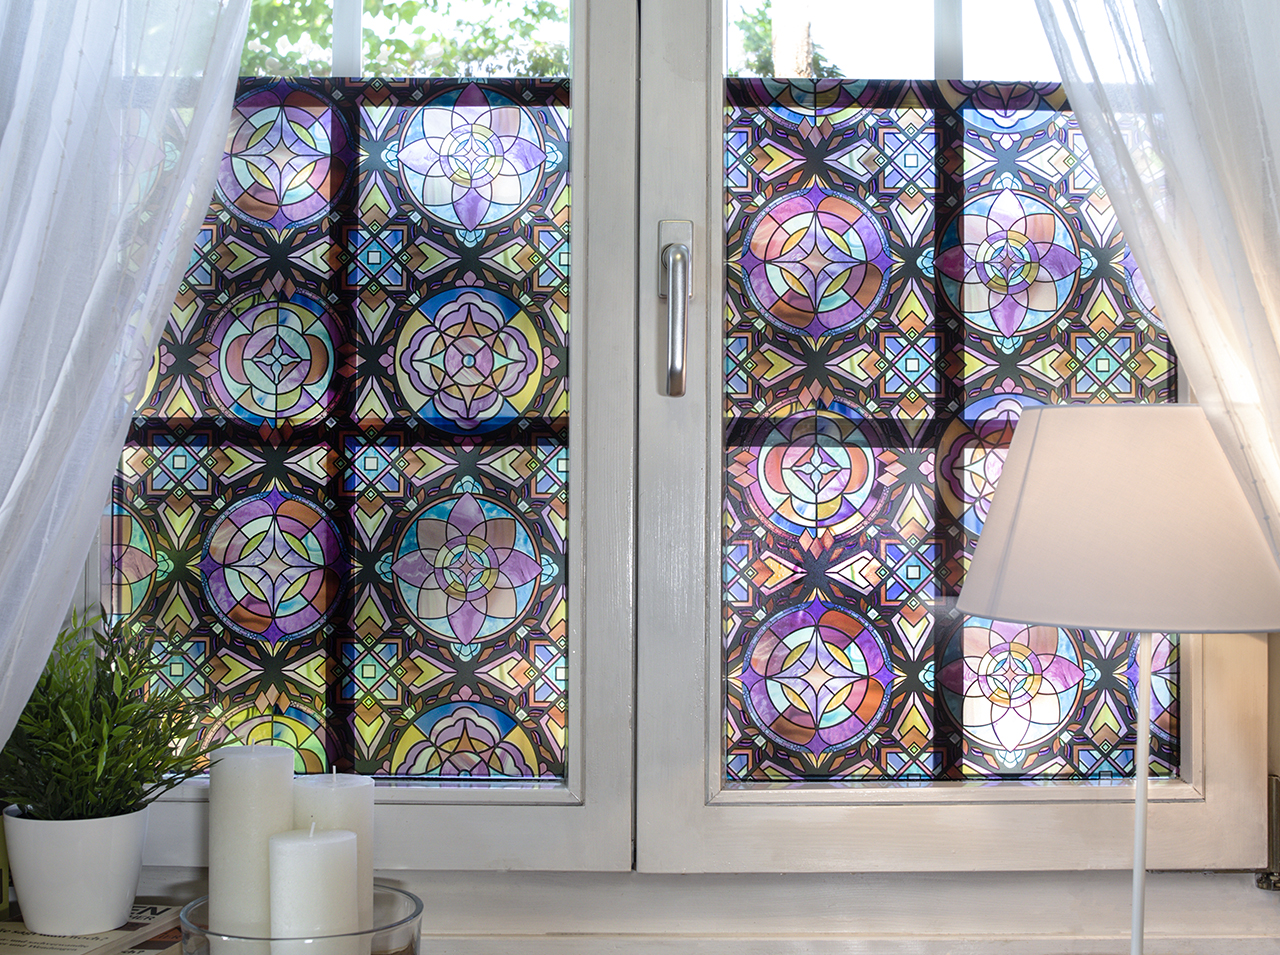 Window surfaces with d-c-fix® Static Premium Lancaster protective film in a colorful mosaic glass art look.